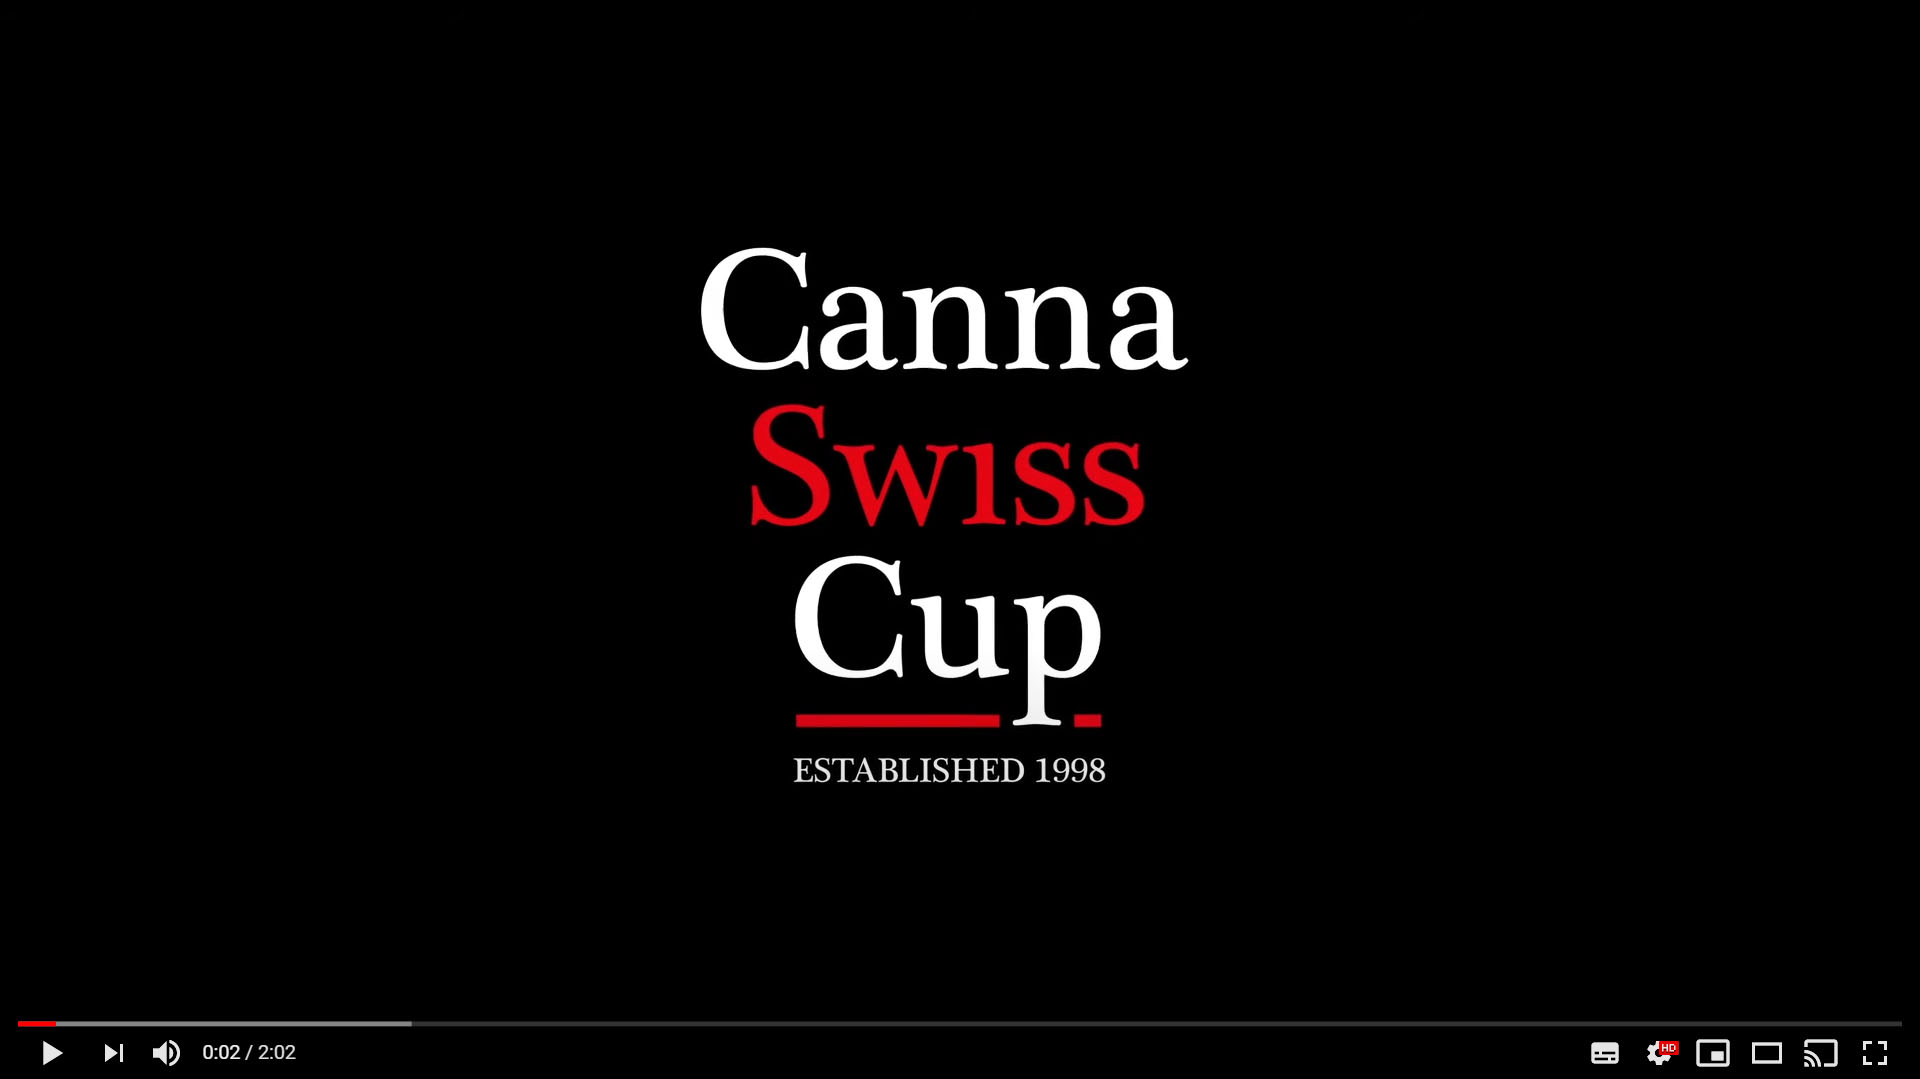 CannaSwissCup Video